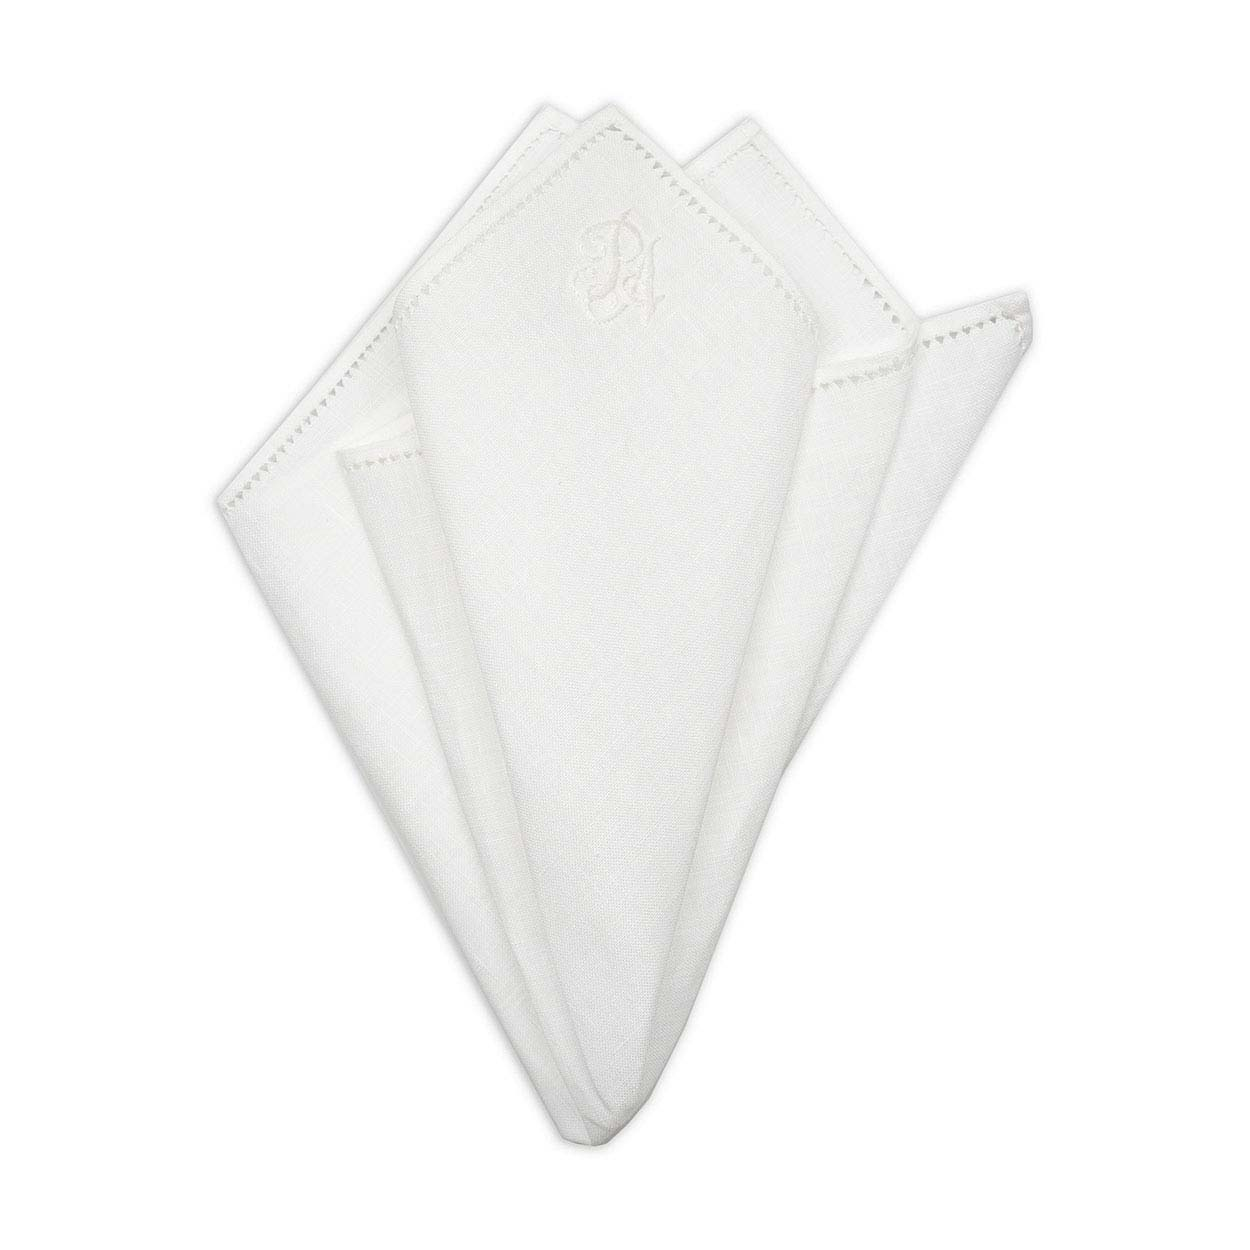 kydos styleforum holiday office party personalized white cotton pocket square